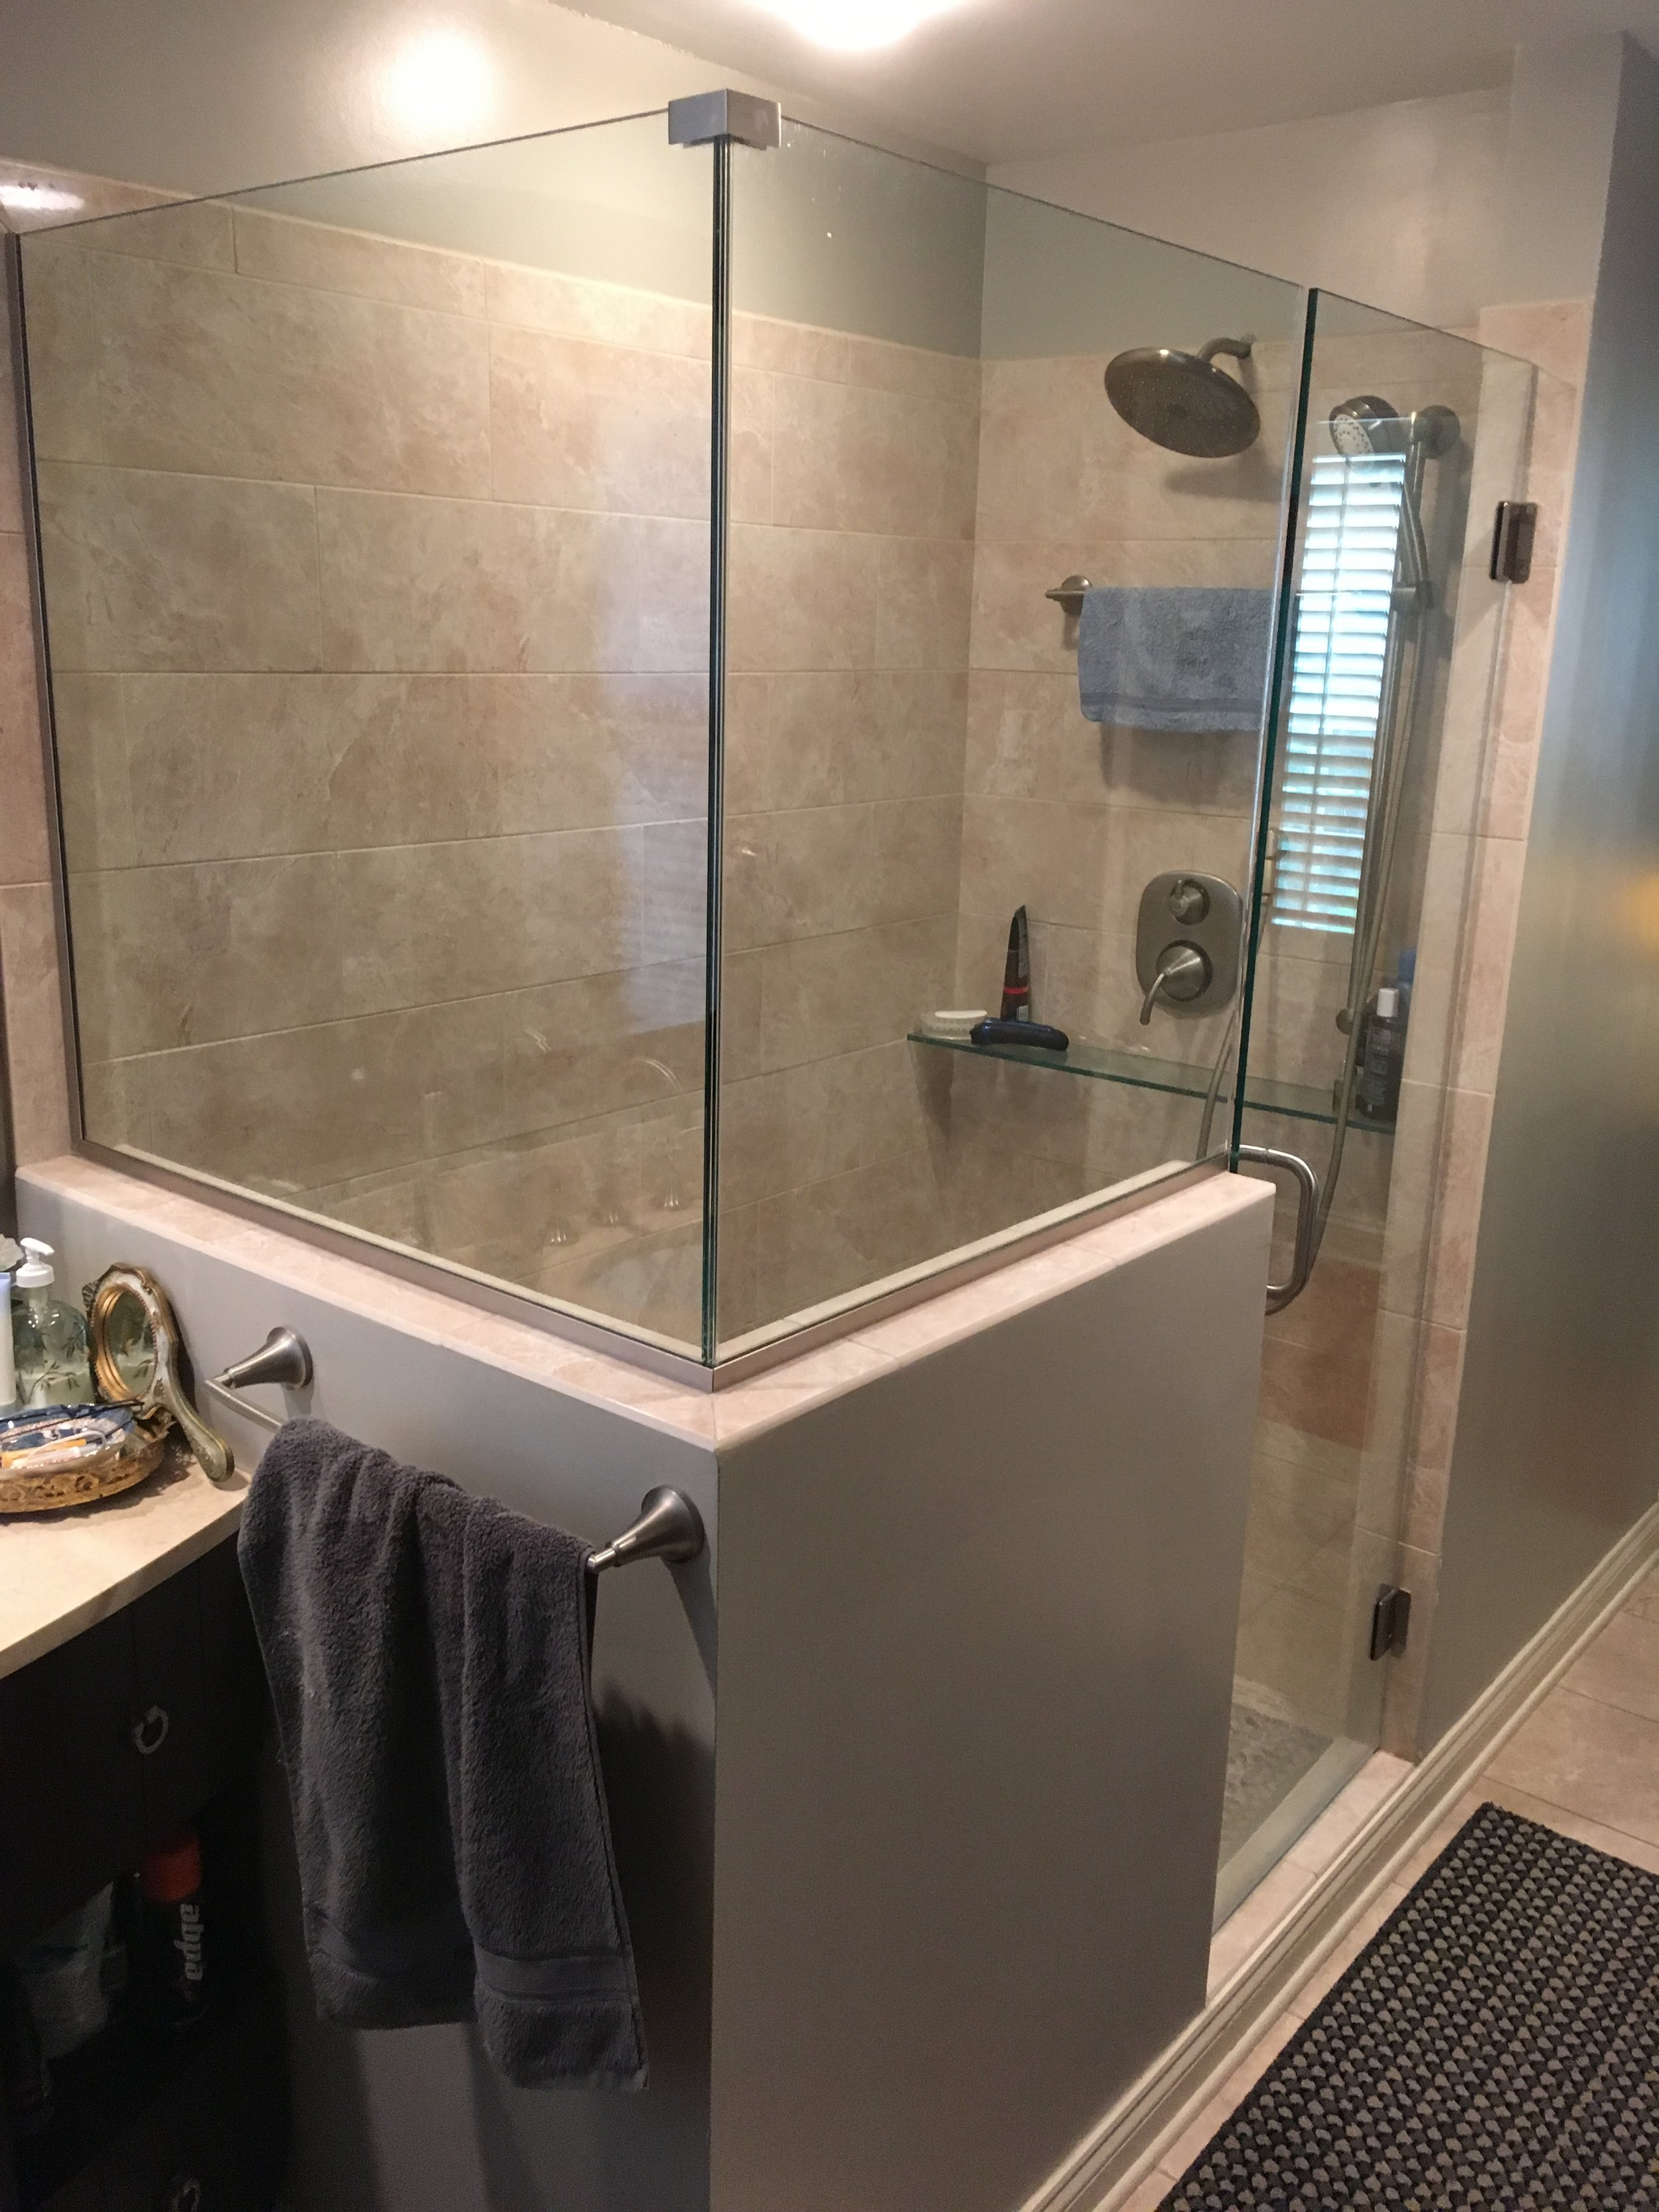 Bathroom2 9-2018.JPG